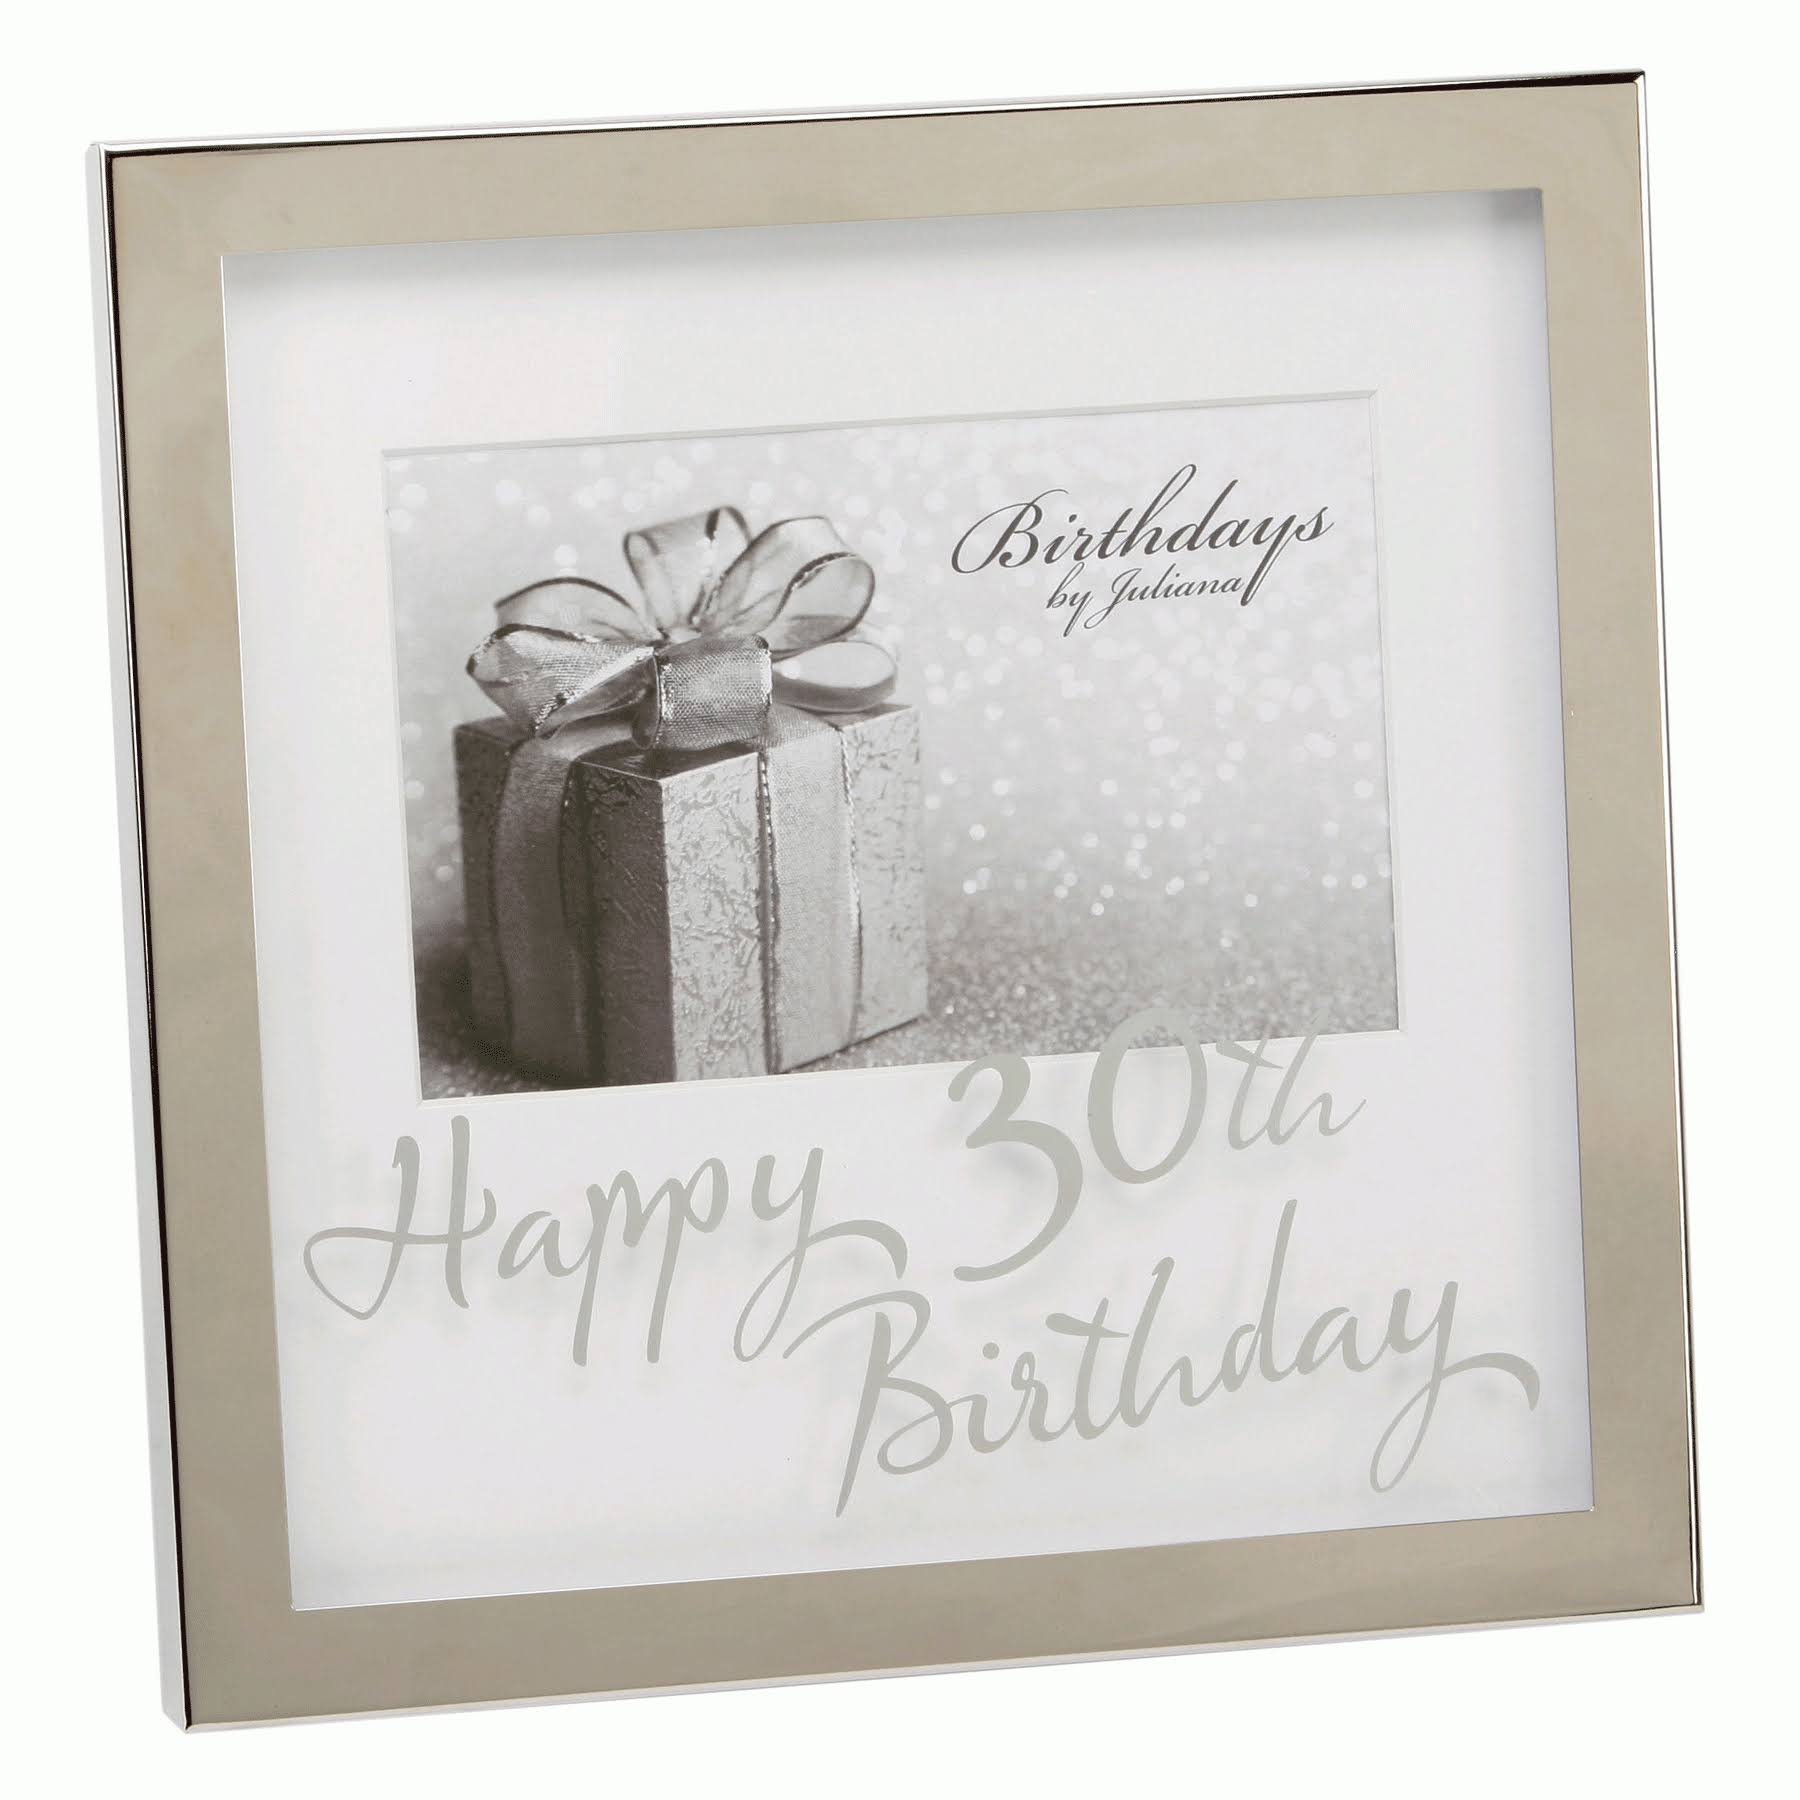 Juliana Happy 30th Birthday 6 x 4 Photo Frame